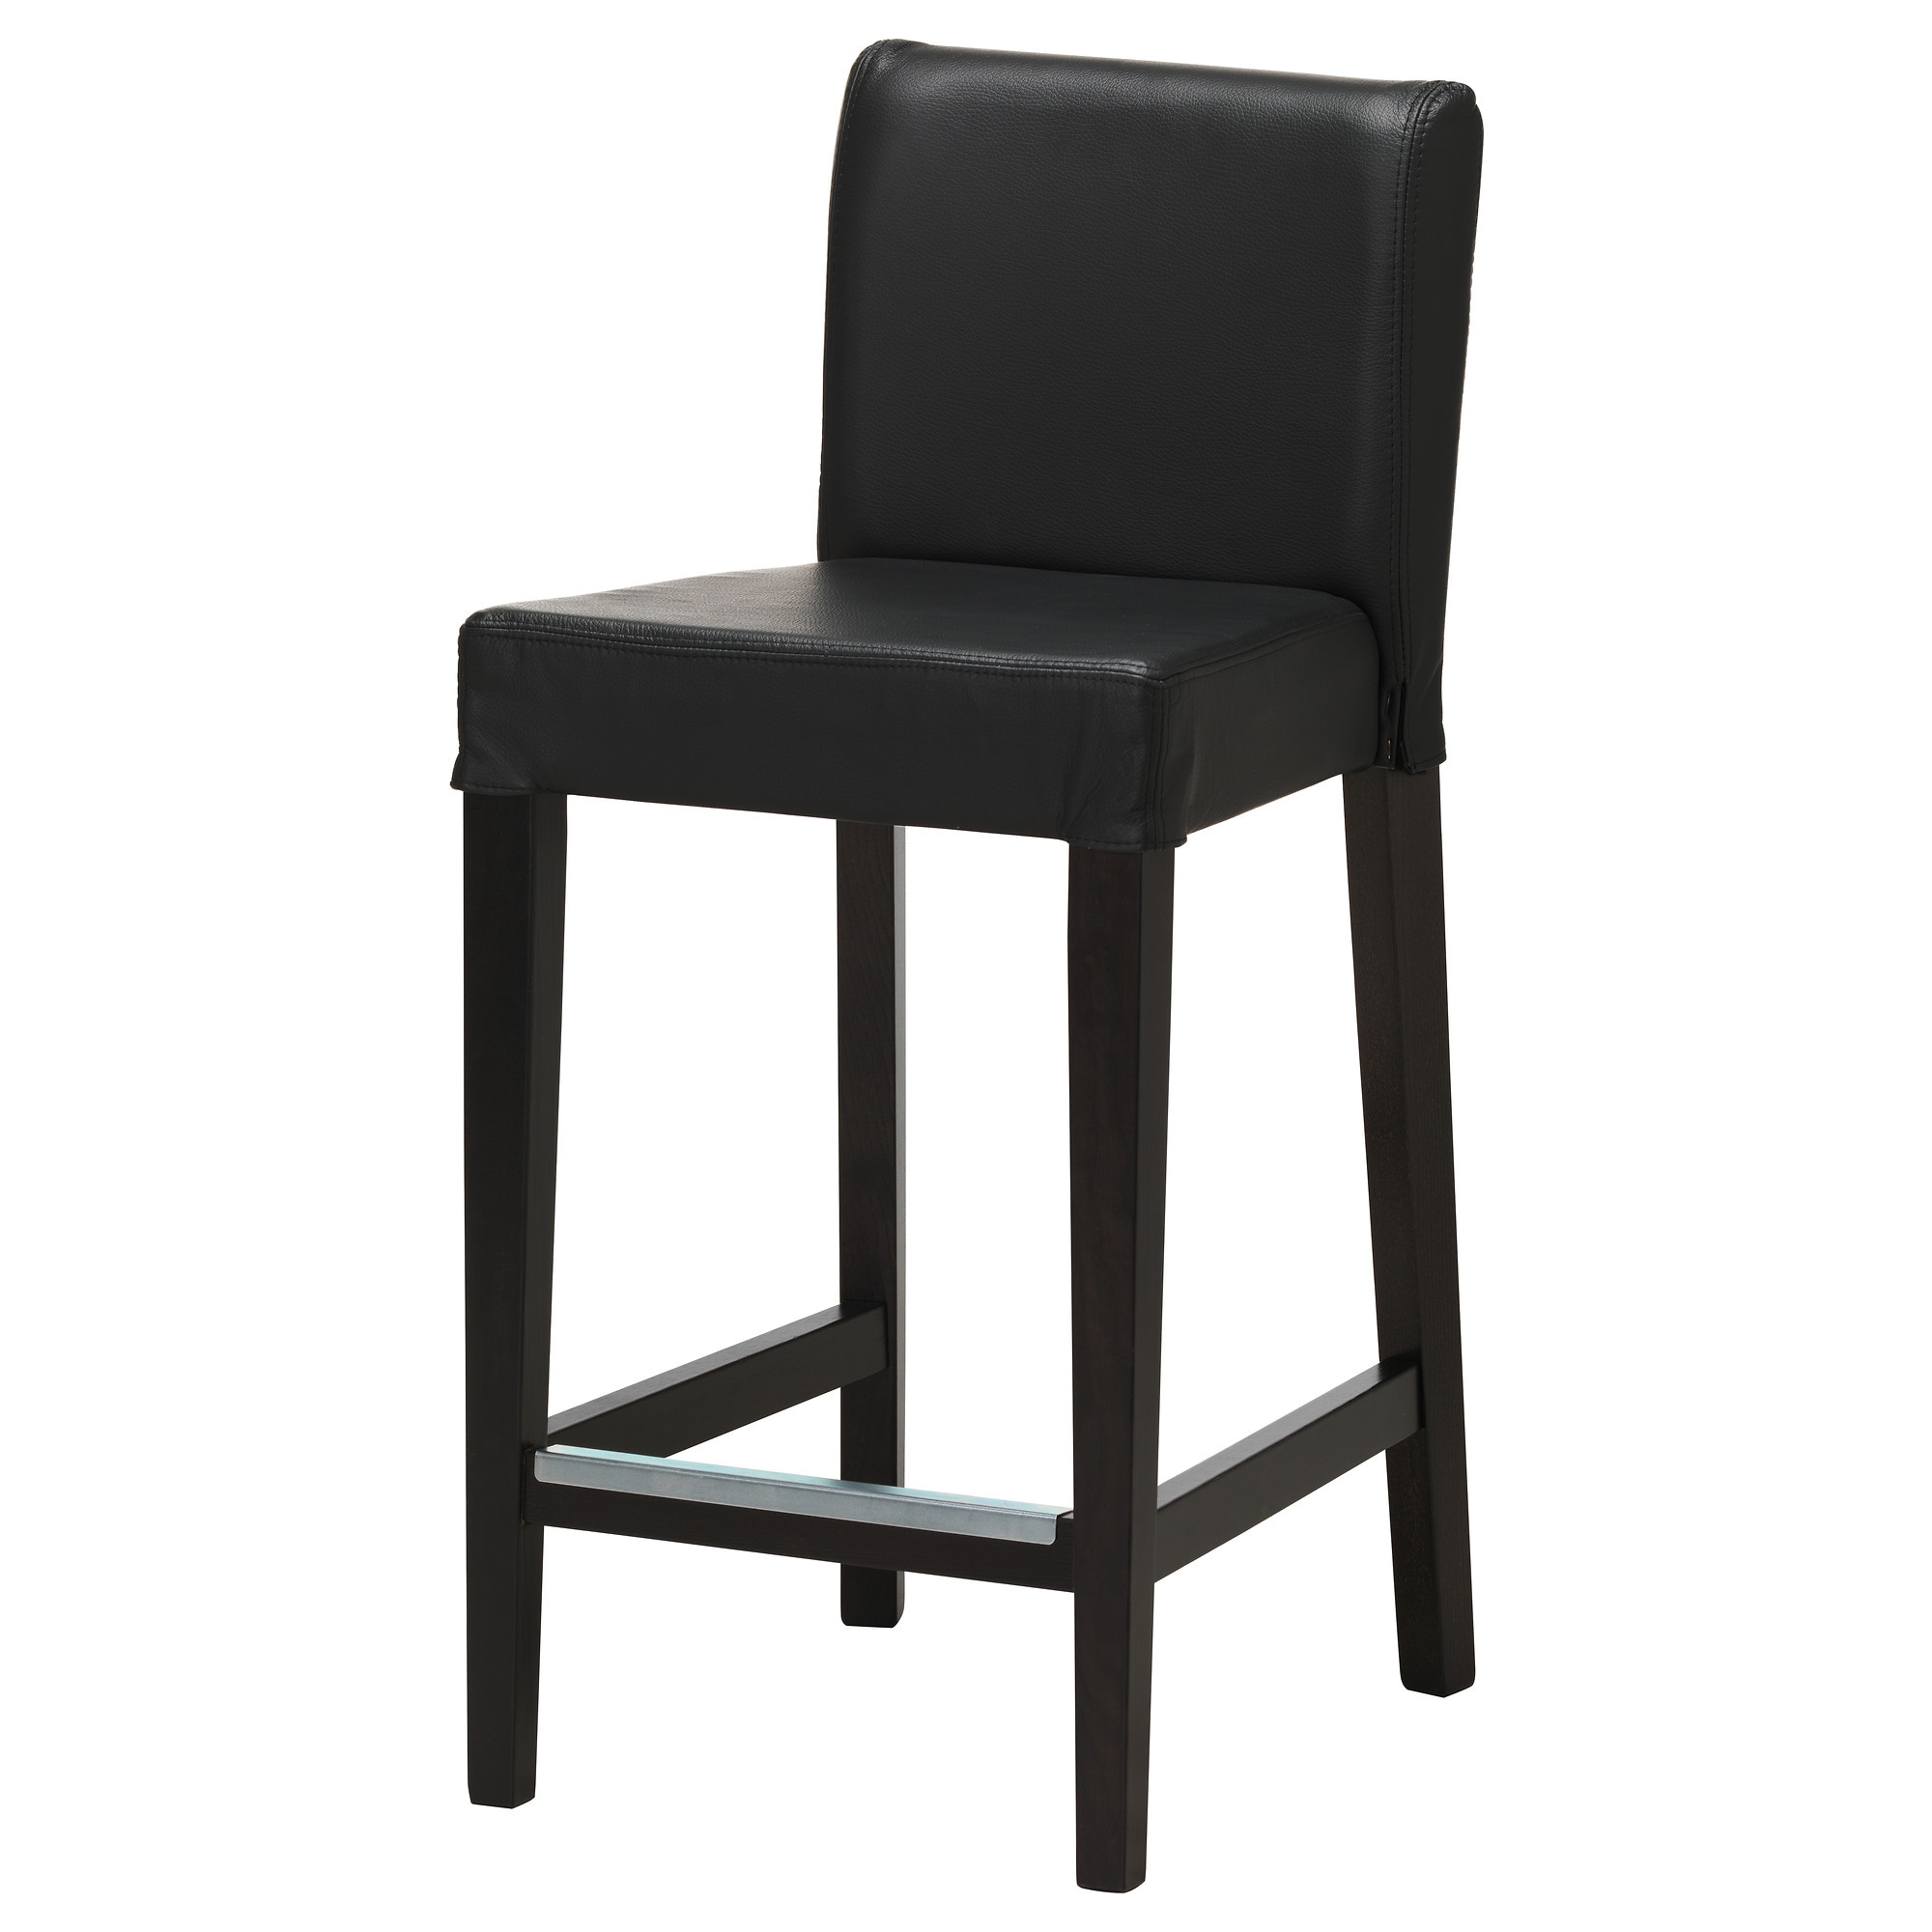 HENRIKSDAL bar stool with backrest brown-black Glose black Tested for 220  sc 1 st  Ikea & Bar Stools - IKEA islam-shia.org